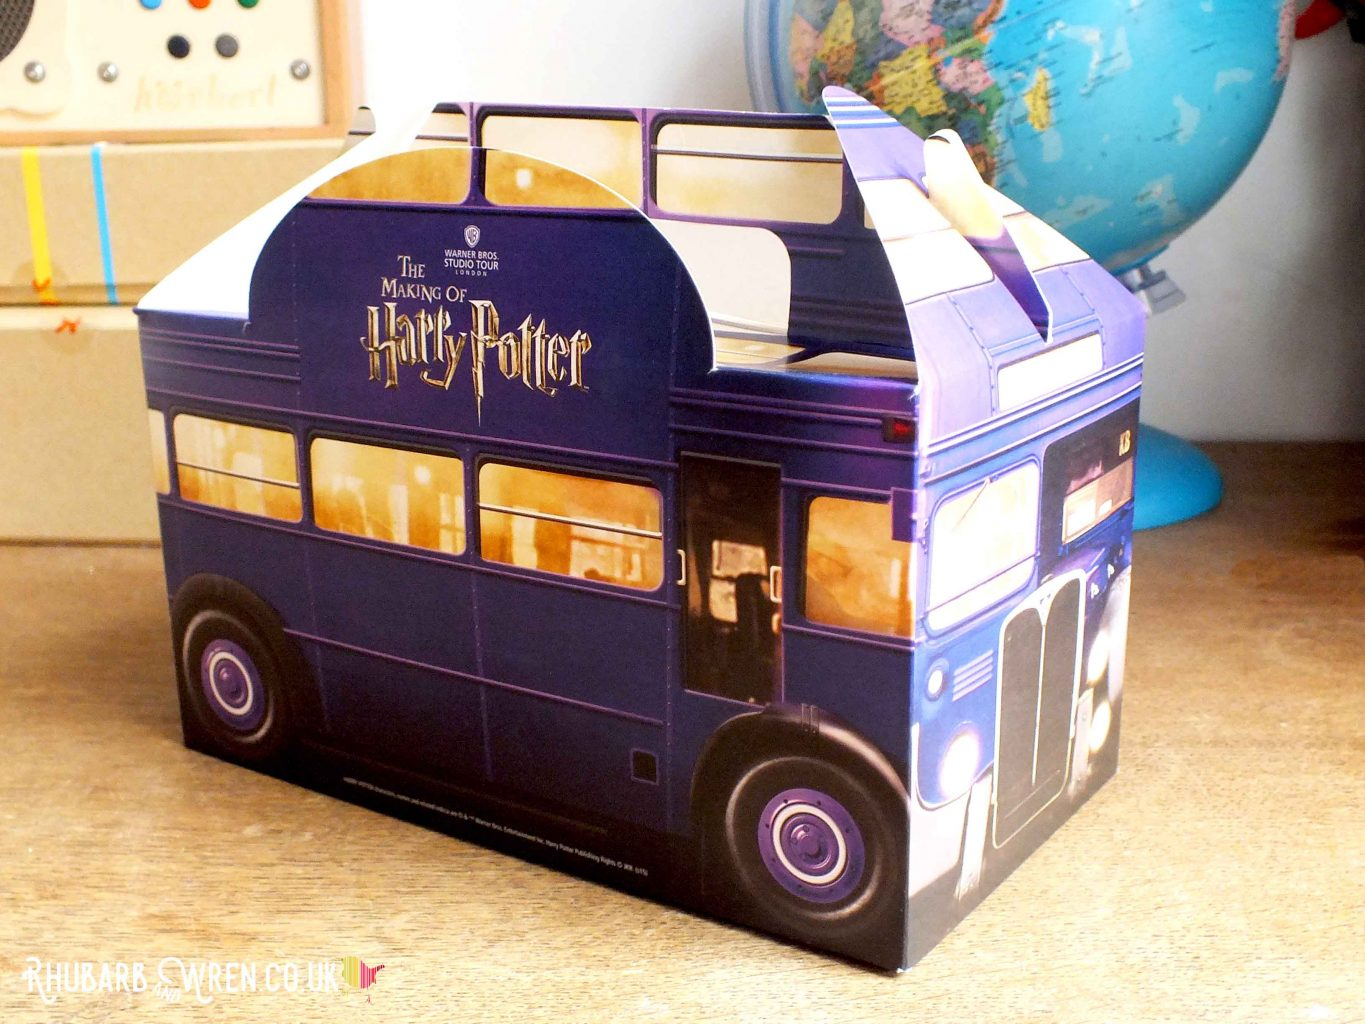 Knight bus shaped children's lunch box from the Making of Harry Potter Warner Bros. Studio Tour, UK